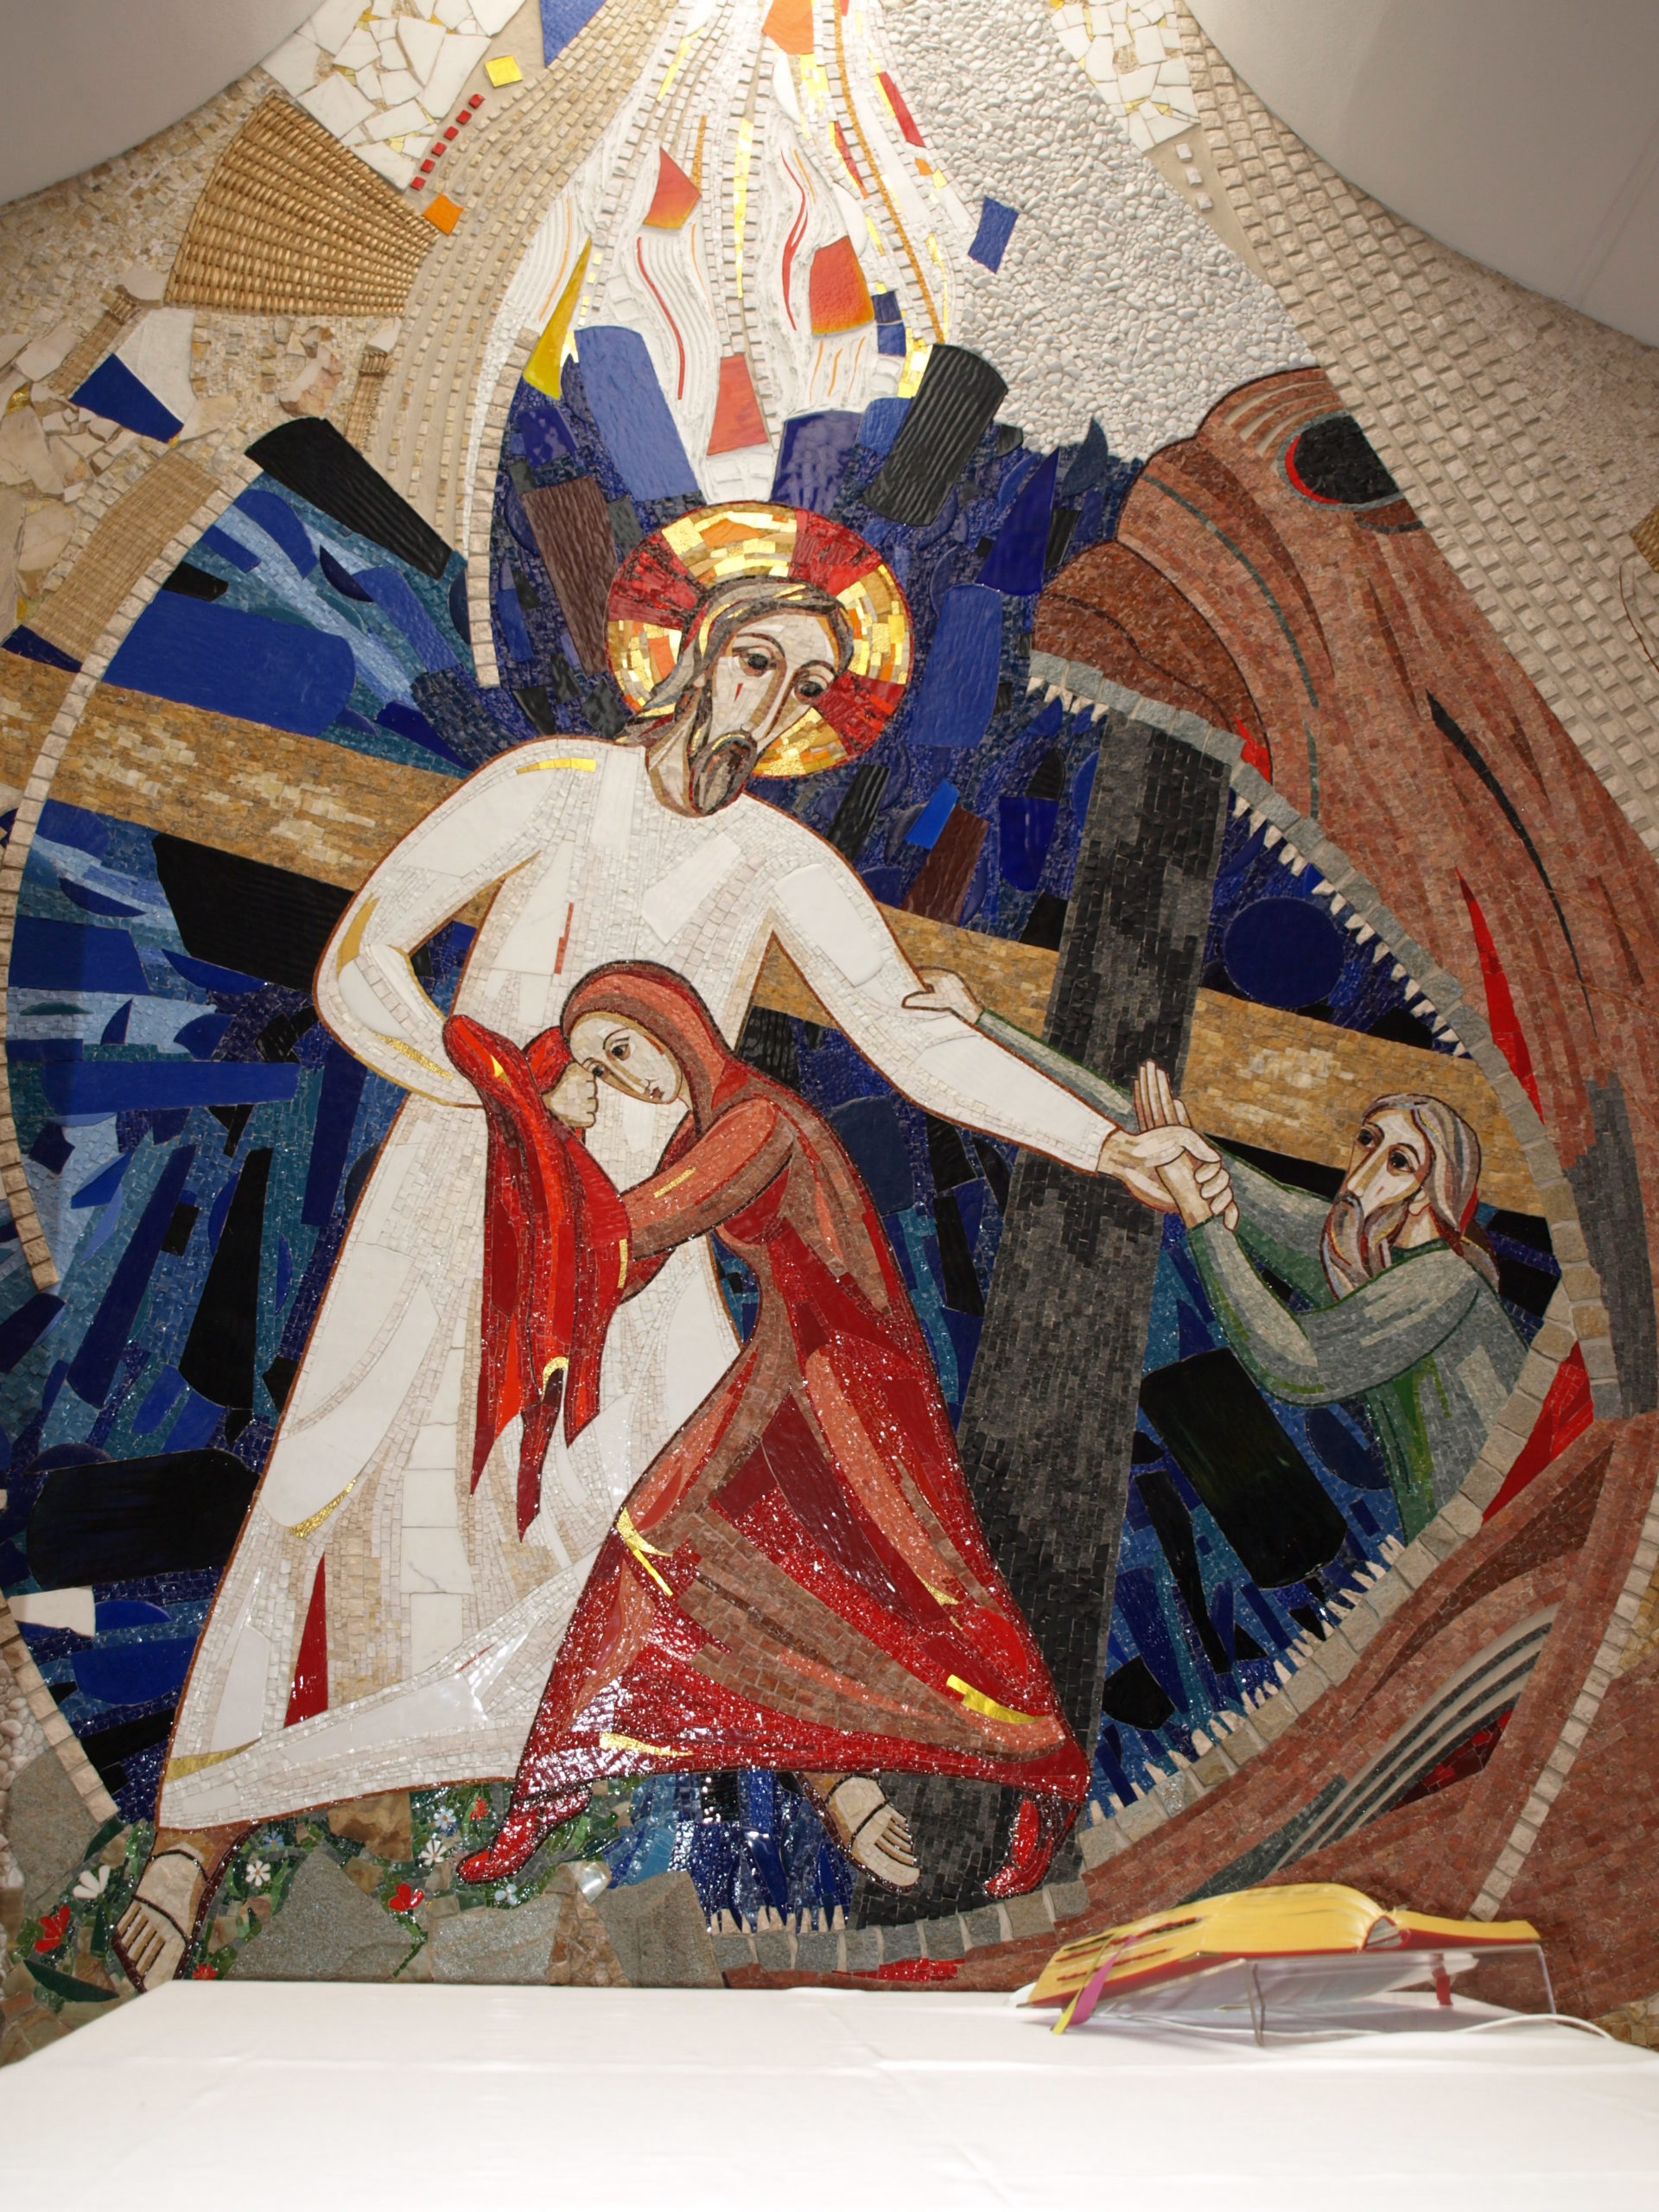 Mosaic of Christ pulling a woman and man out of hell.